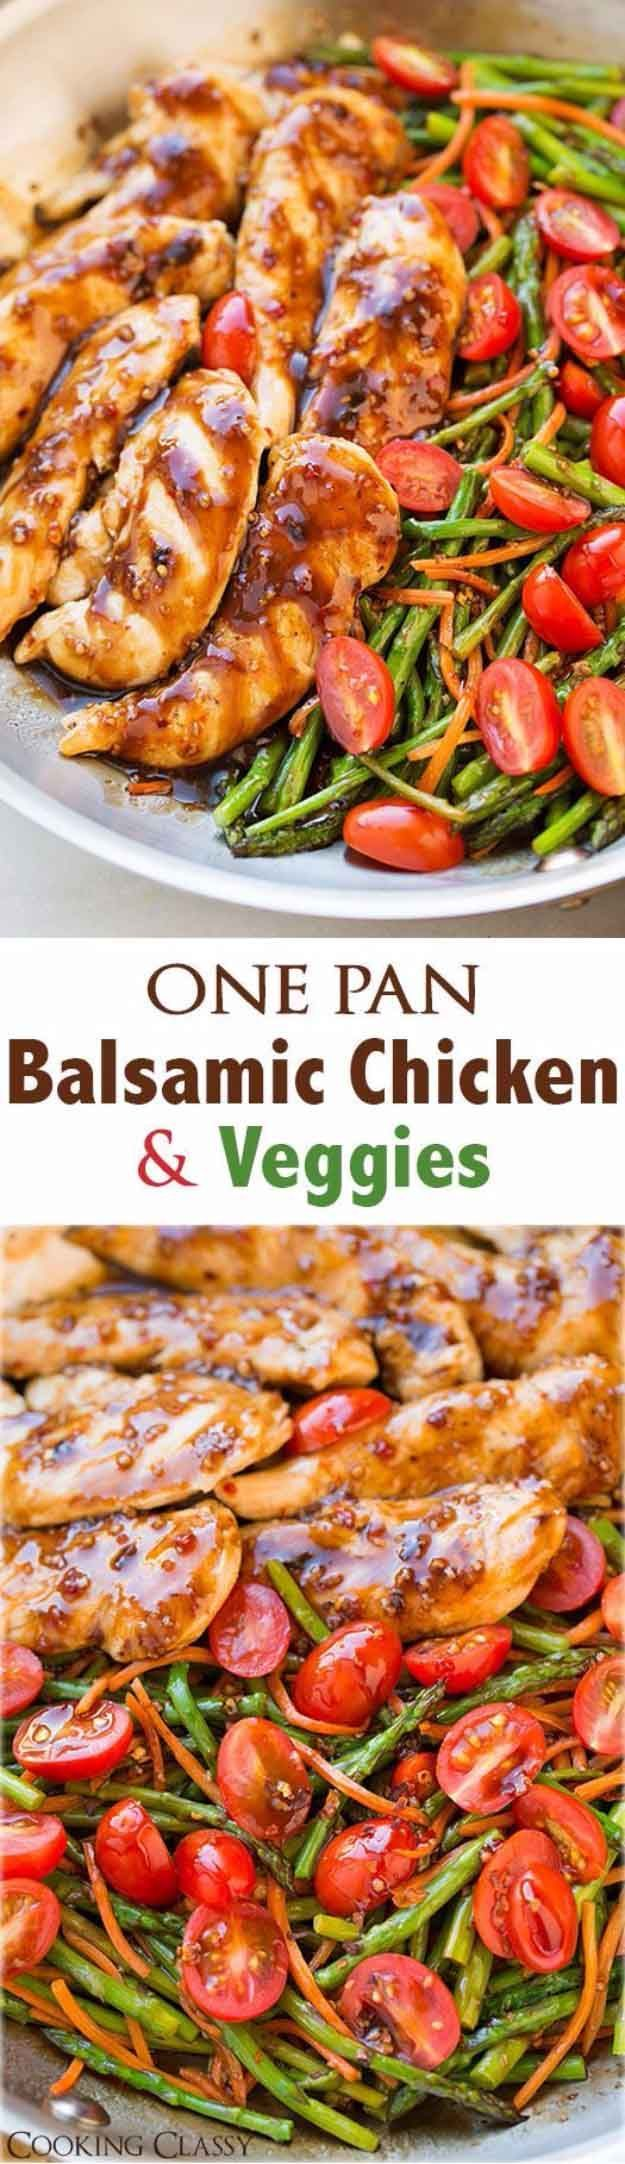 Quick and Easy Healthy Dinner Recipes - One Pan Balsamic Chicken and Veggies- Awesome Recipes For Weight Loss - Great Receipes For One, For Two or For Family Gatherings - Quick Recipes for When You're On A Budget - Chicken and Zucchini Dishes Under 500 Calories - Quick Low Carb Dinners With Beef or Shrimp or Even Vegetarian - Amazing Dishes For Picky Eaters - https://thegoddess.com/easy-healthy-dinner-receipes